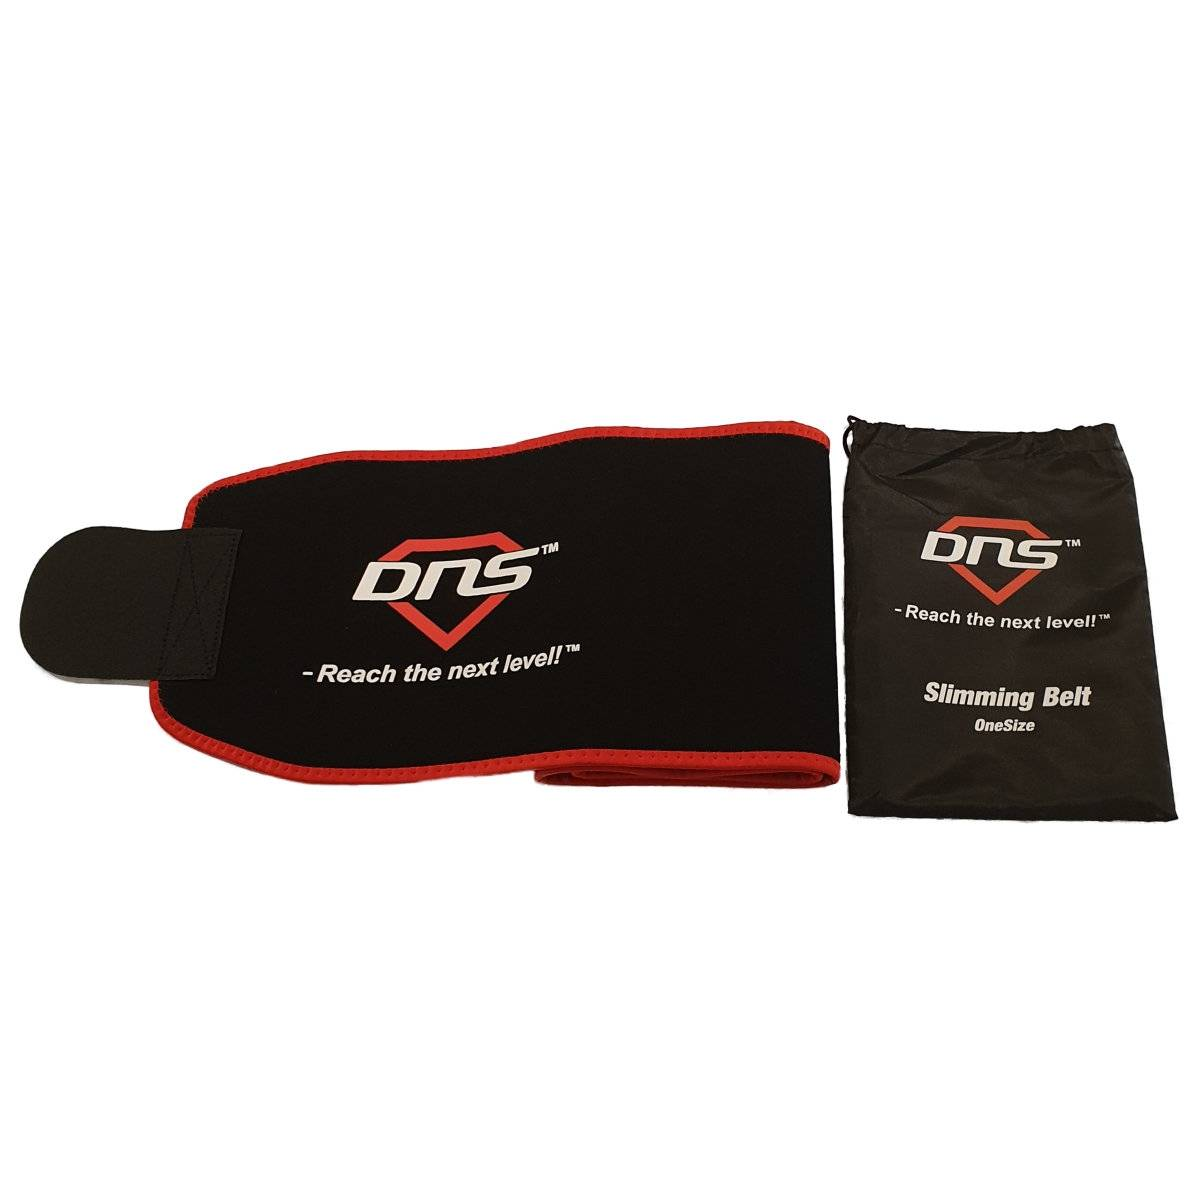 NYHET! DNS SLIMMING BELT - ONE SIZE